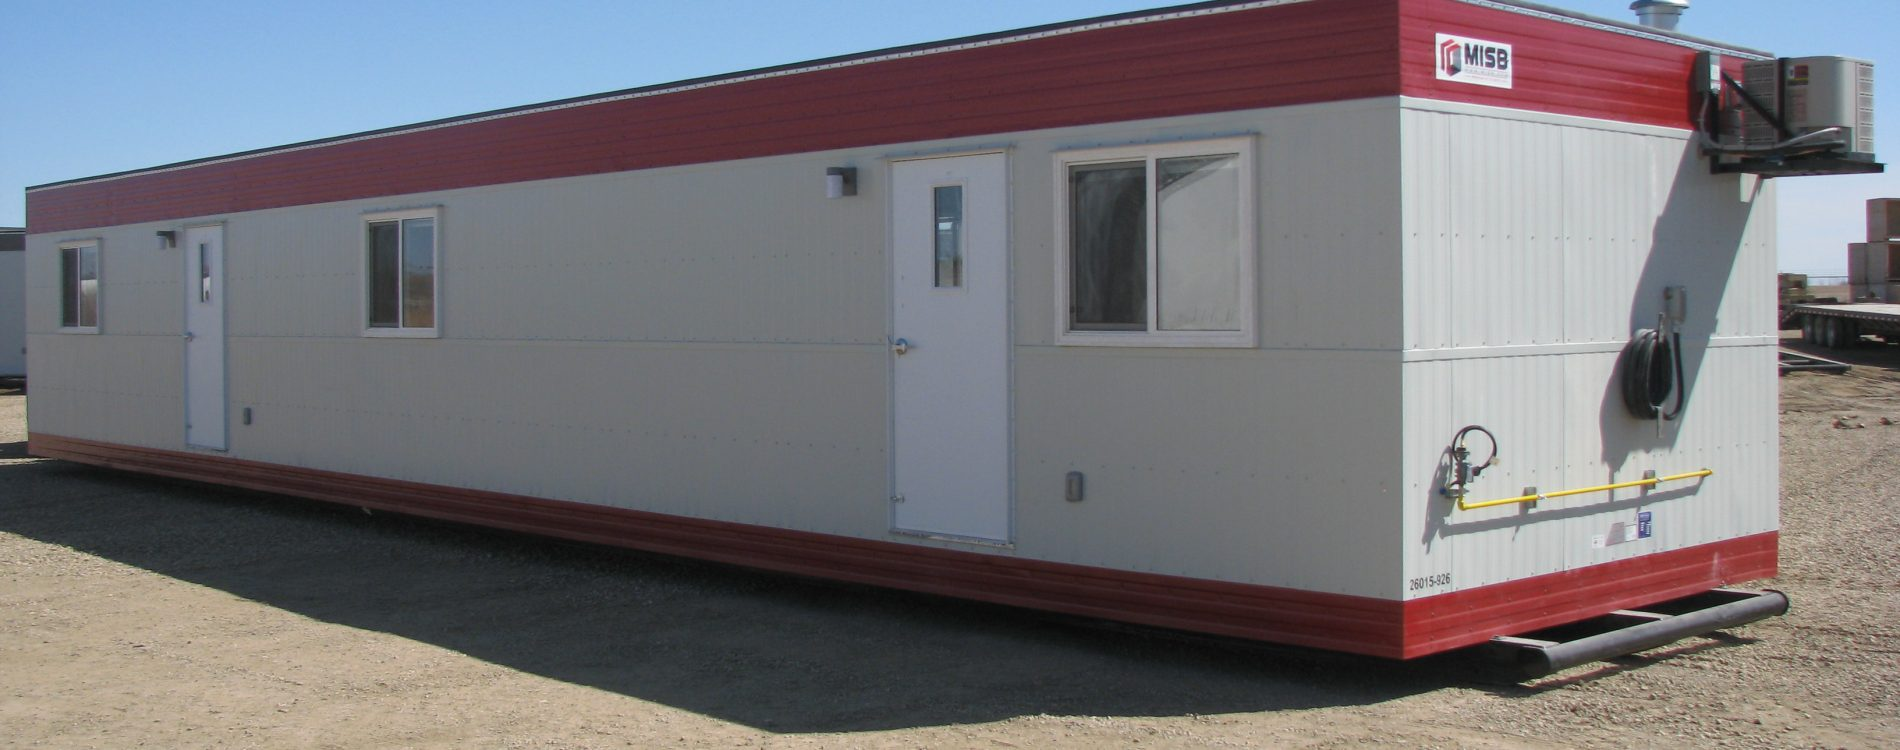 MISB | We Manufacture High Quality, Code Compliant Relocatable Modular Structures.